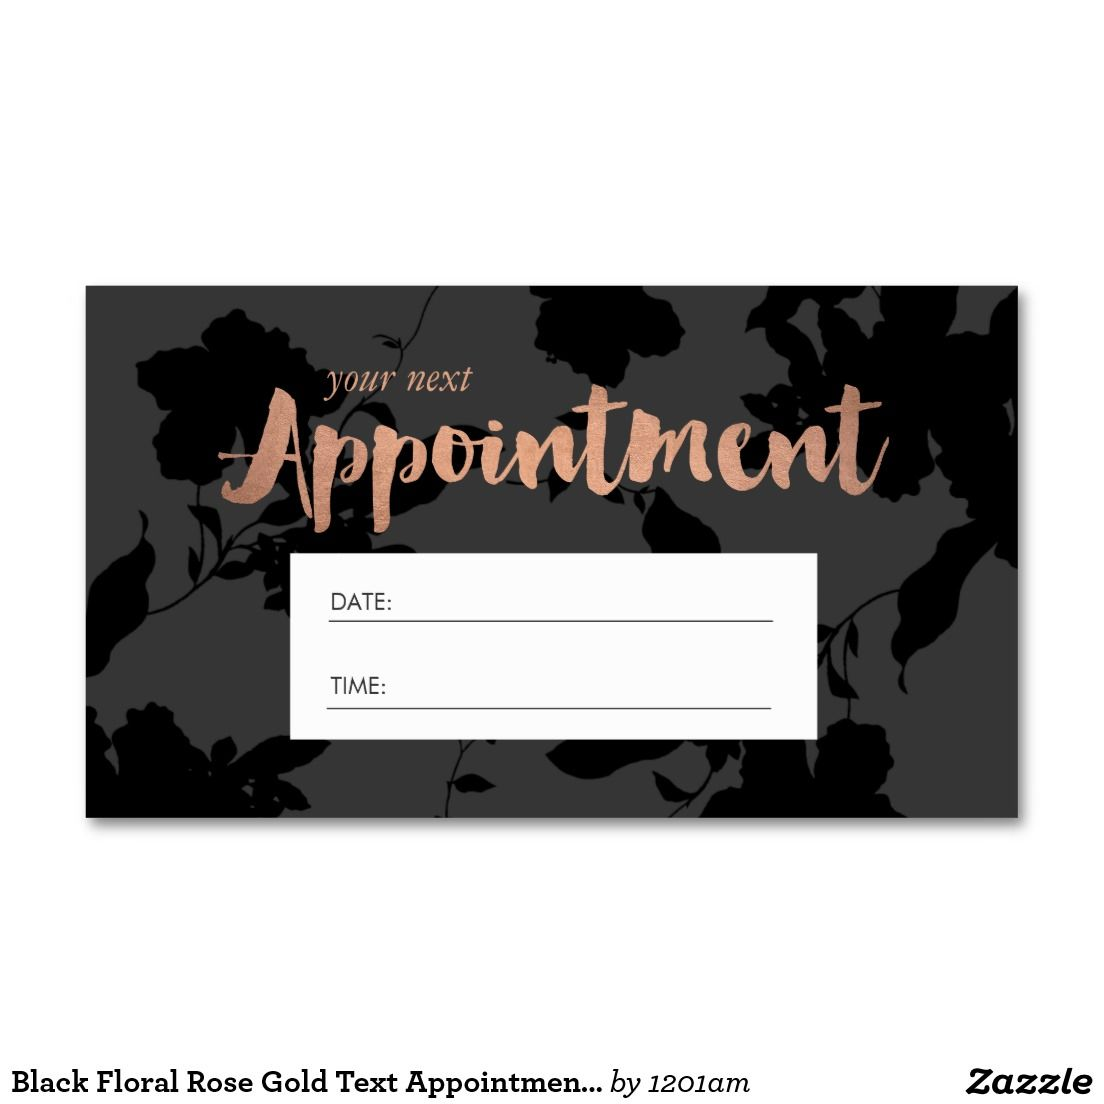 Black floral rose gold text appointment cards for hair salons black floral rose gold text appointment cards for hair salons makeup artists cosmetologists magicingreecefo Image collections